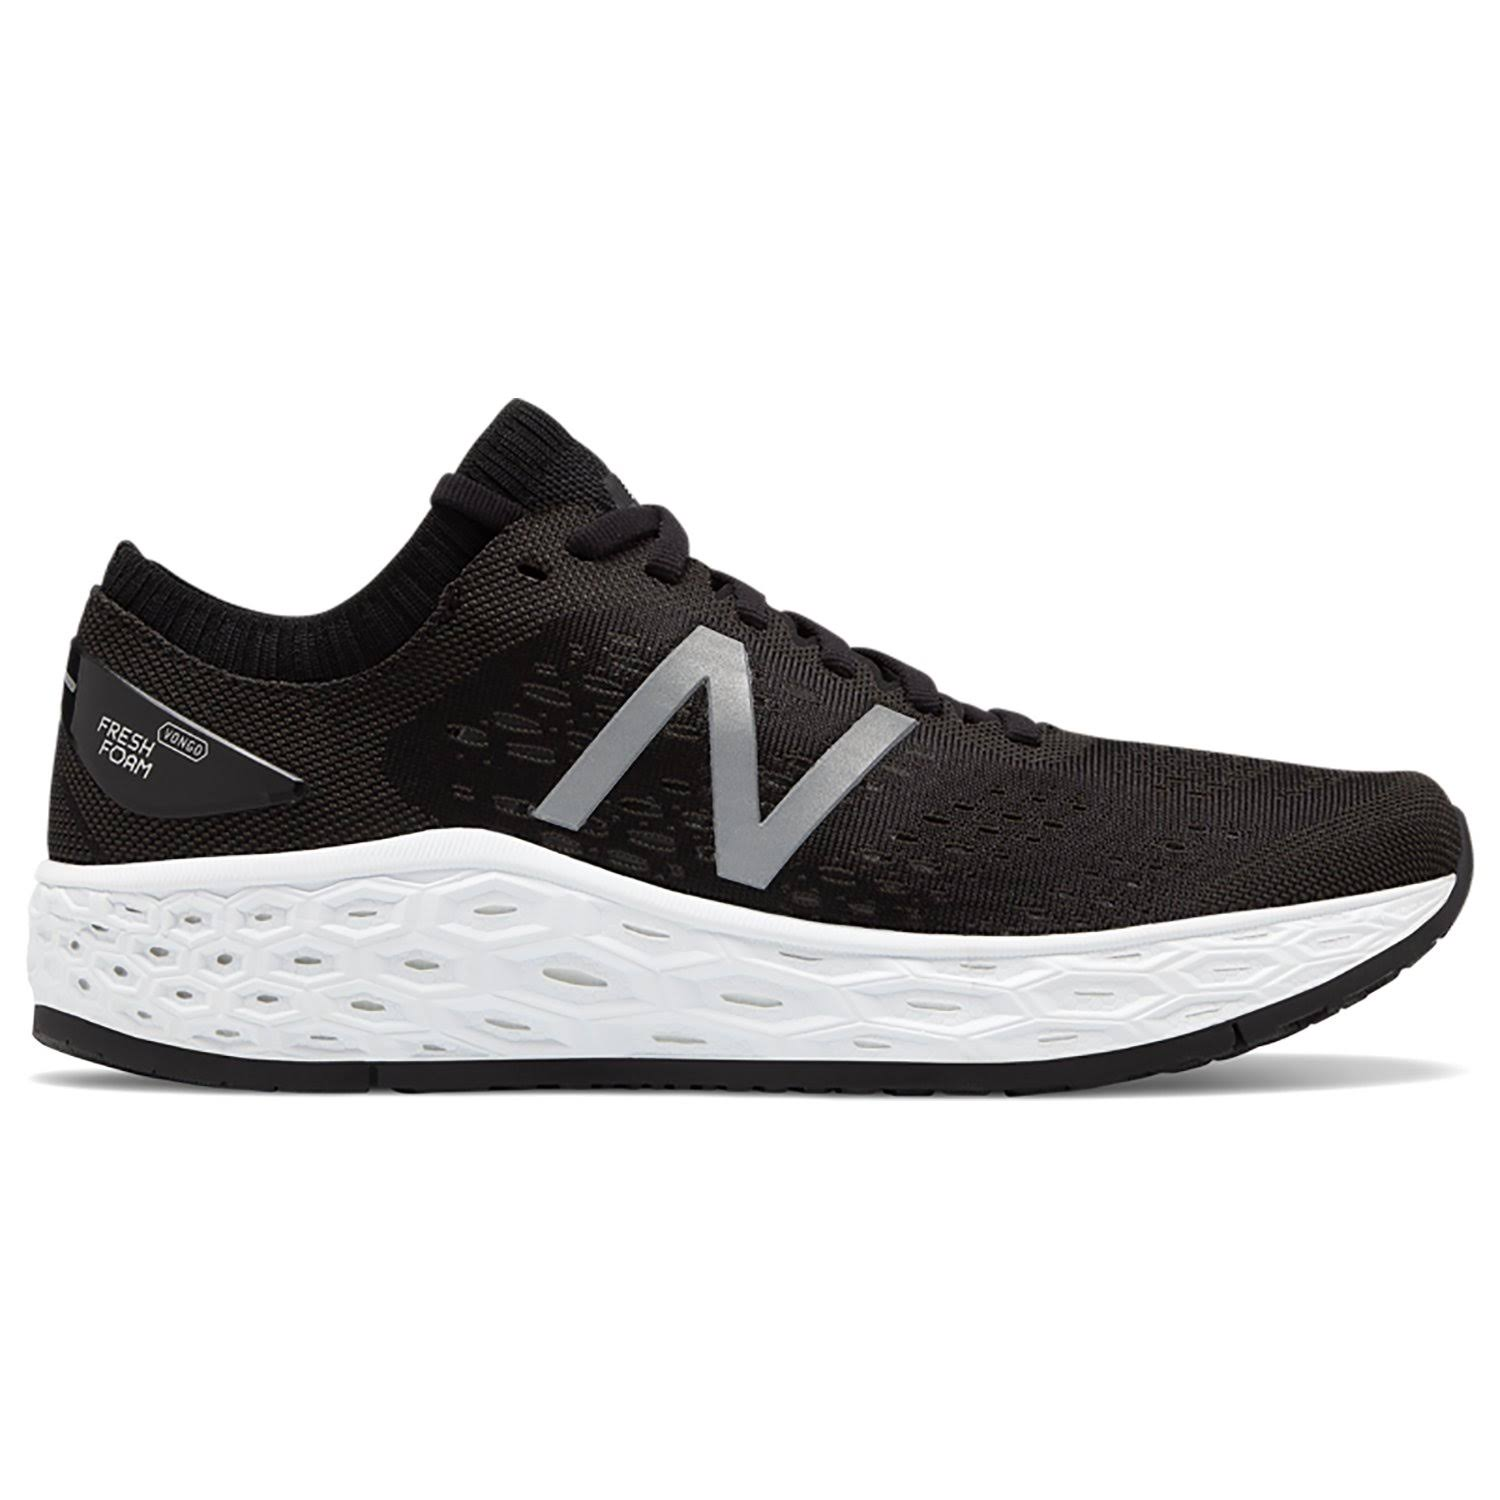 New Balance Fresh Foam Vongo v4 10.5 Women's Black